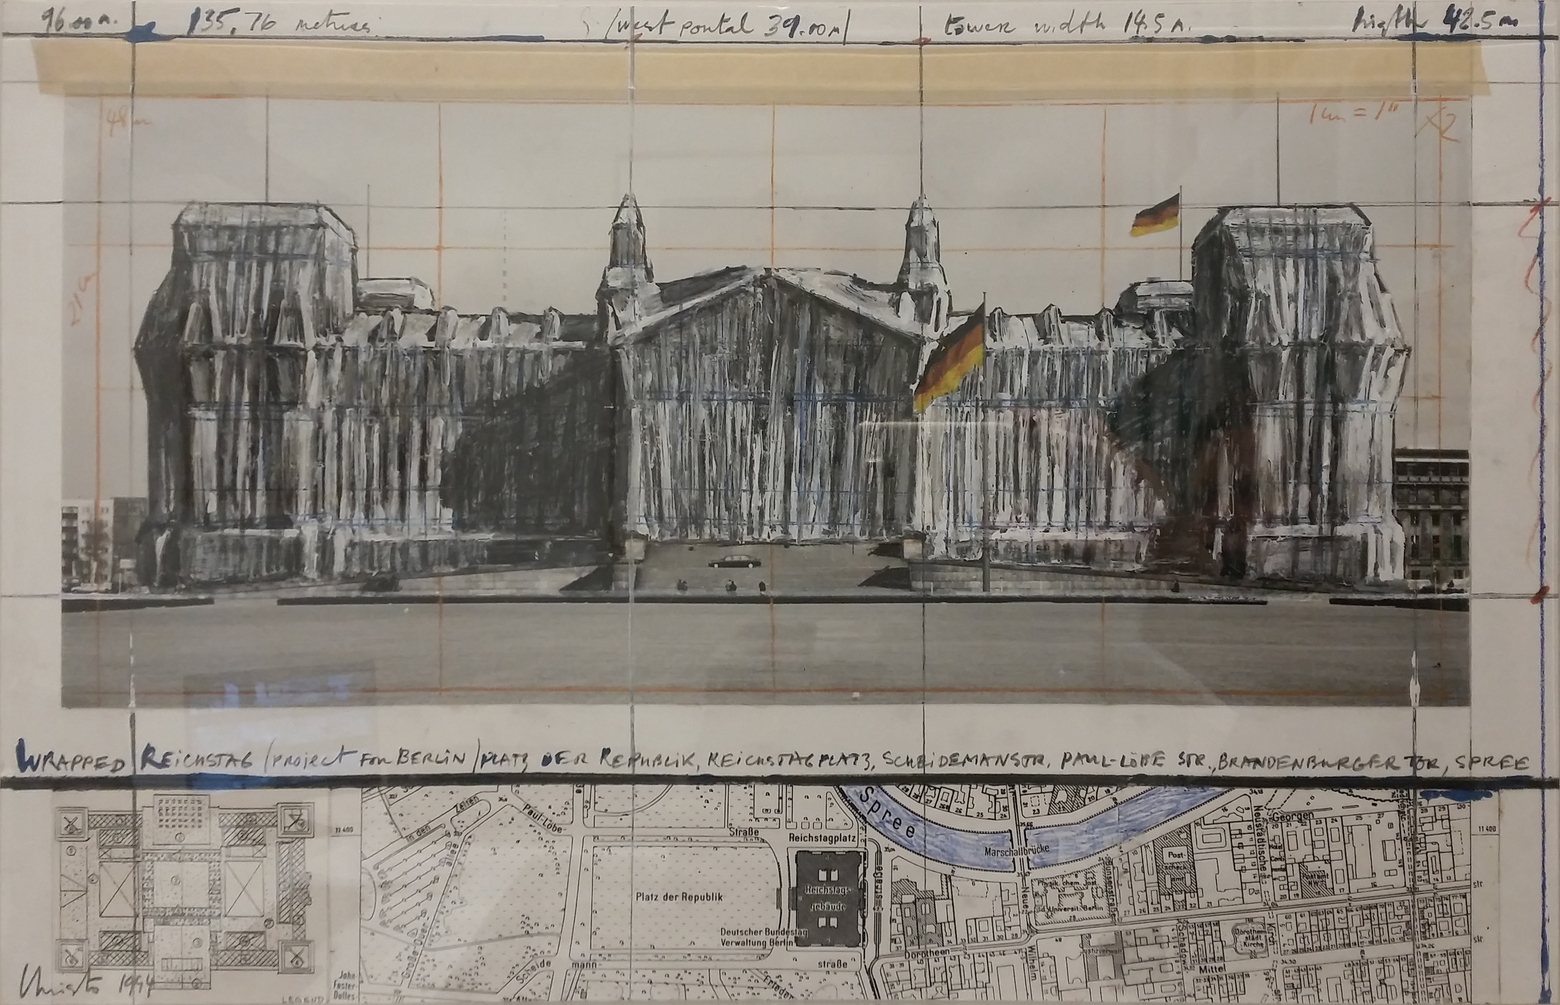 Wrapped Reichstag, Project for Berlin by Christo